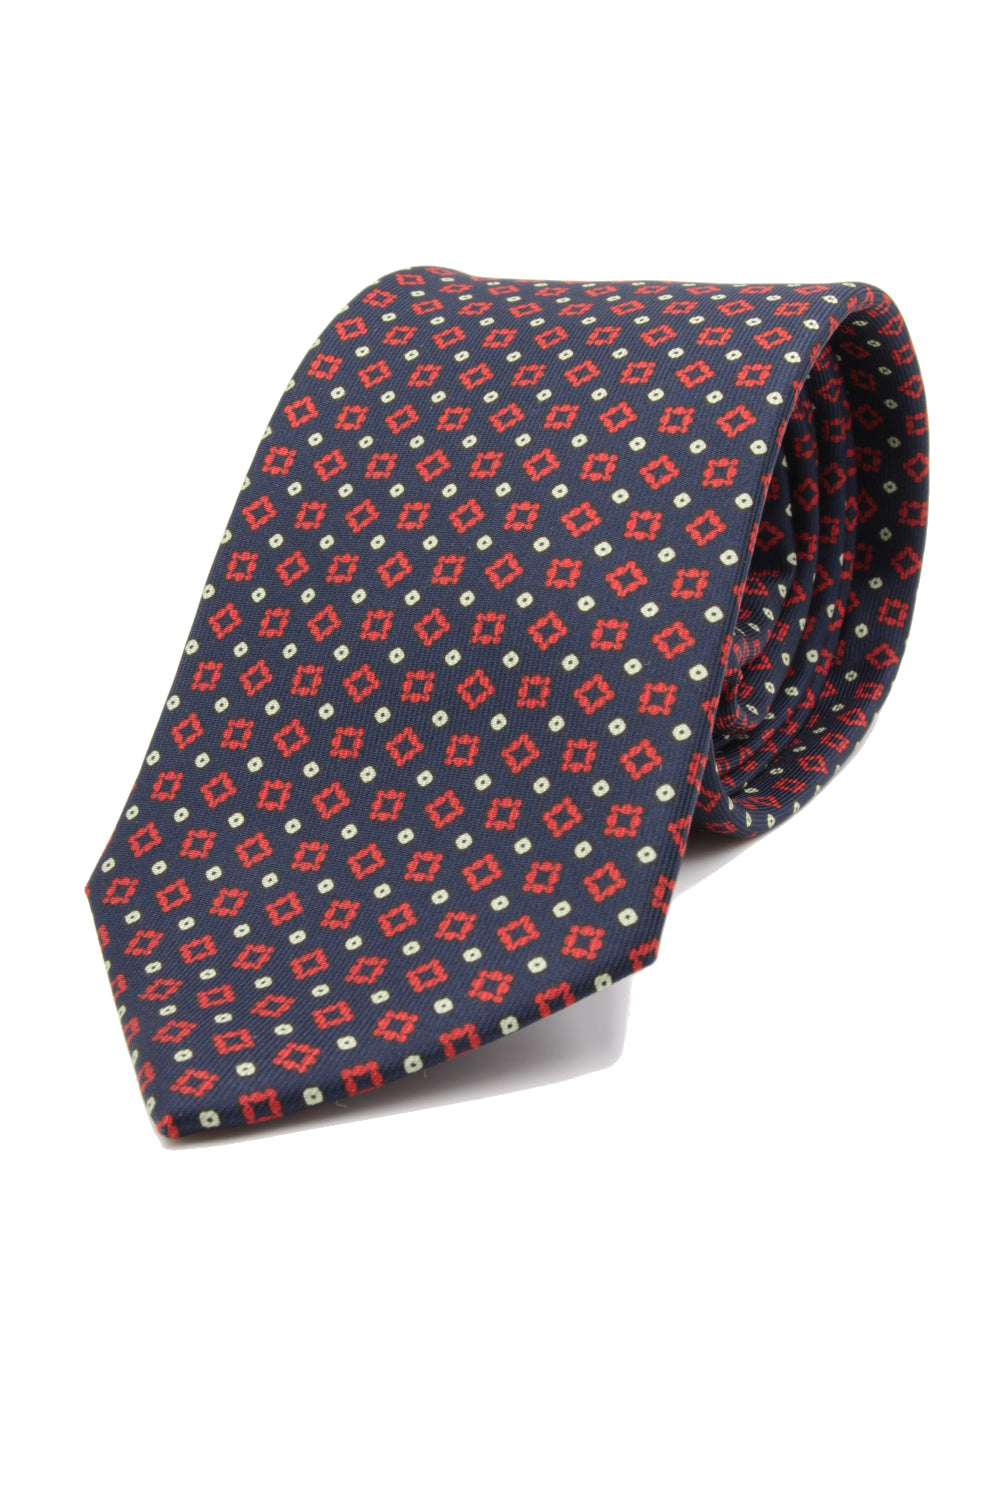 drake's Dark blue, red medallion and white dots tie